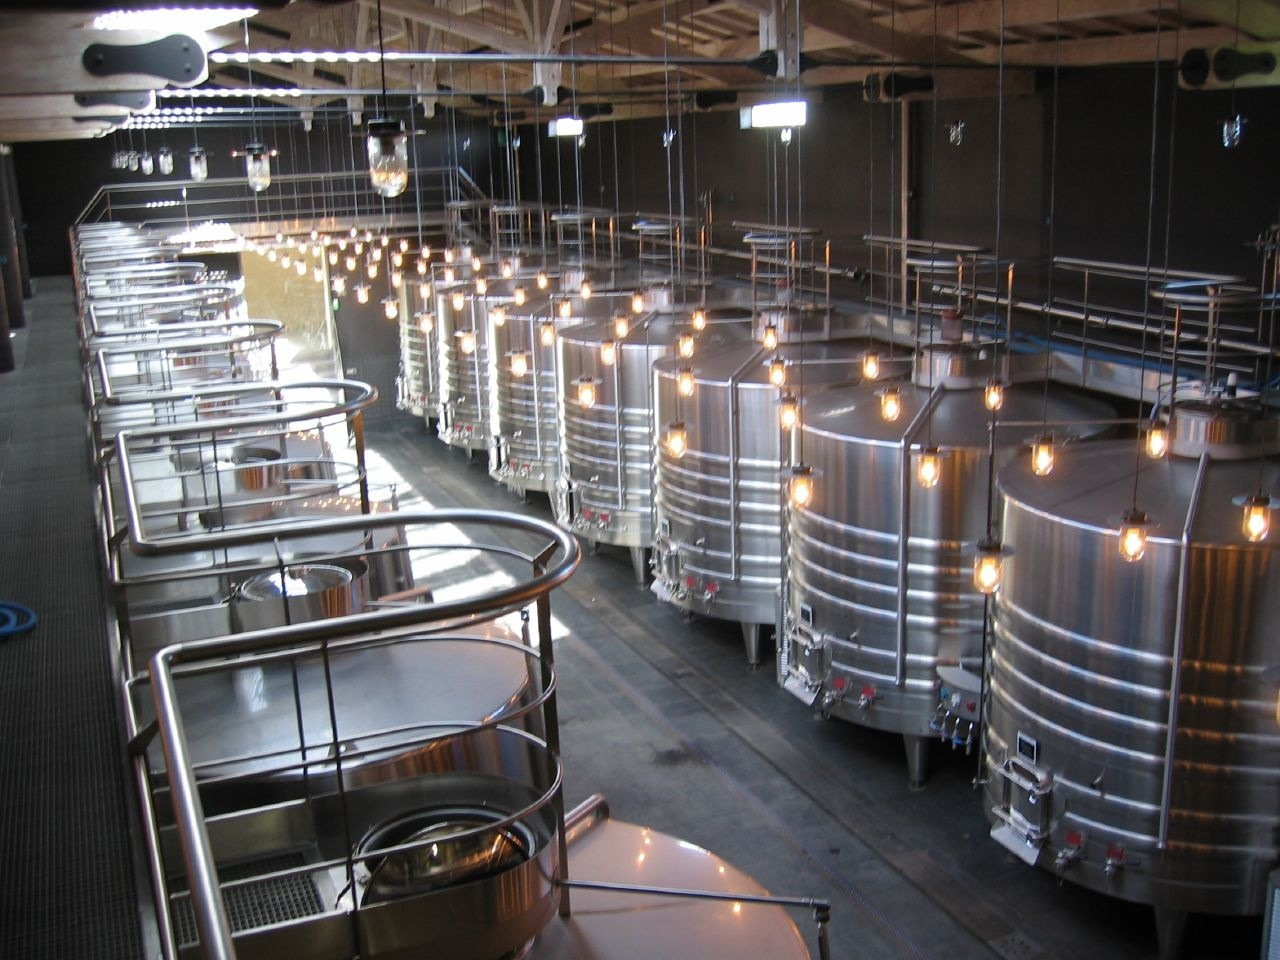 Using Dehydrated Grape Marc Waste To Improve Wine Quality